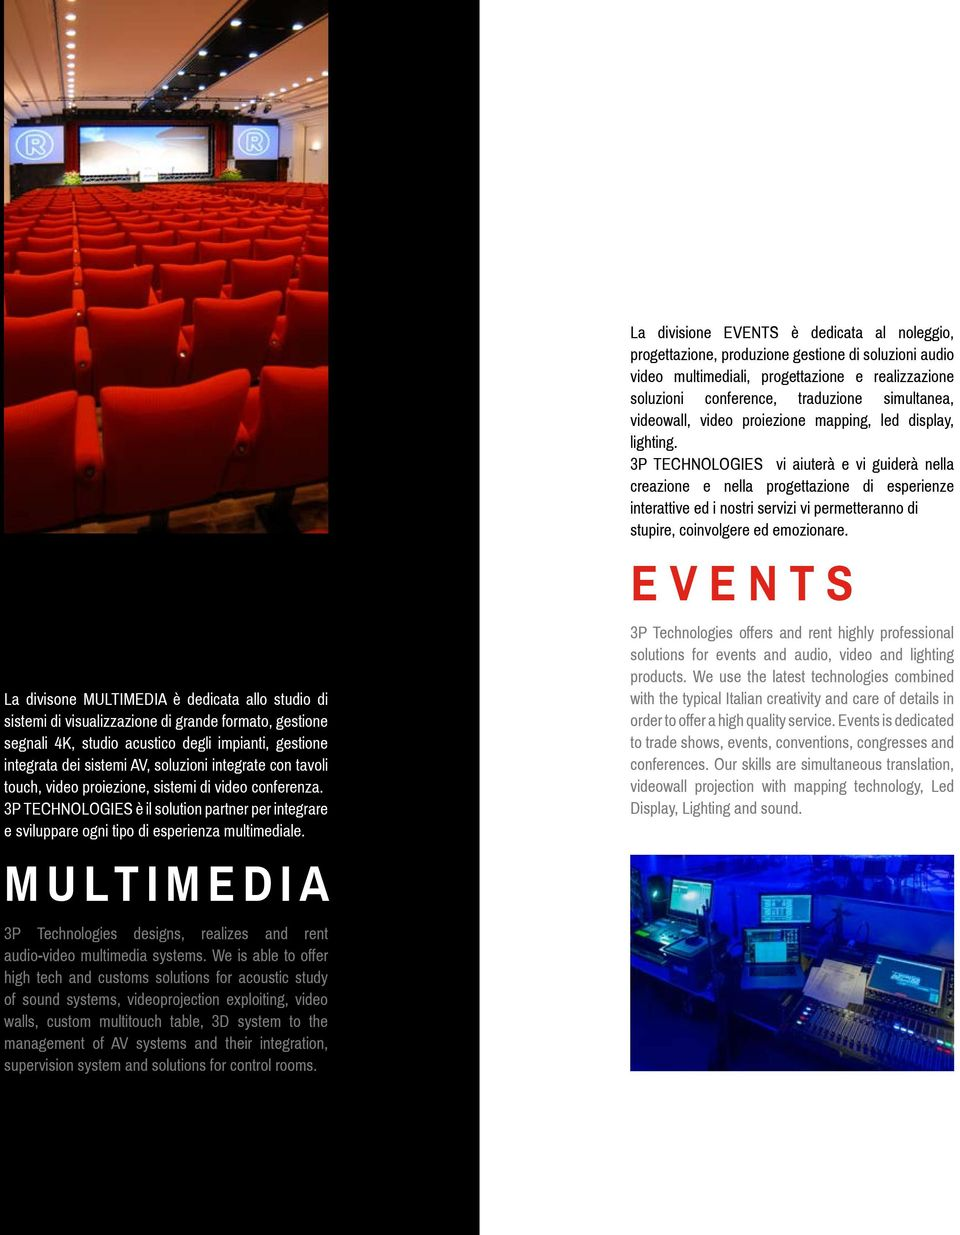 MULTIMEDIA 3P Technologies designs, realizes and rent audio-video multimedia systems.